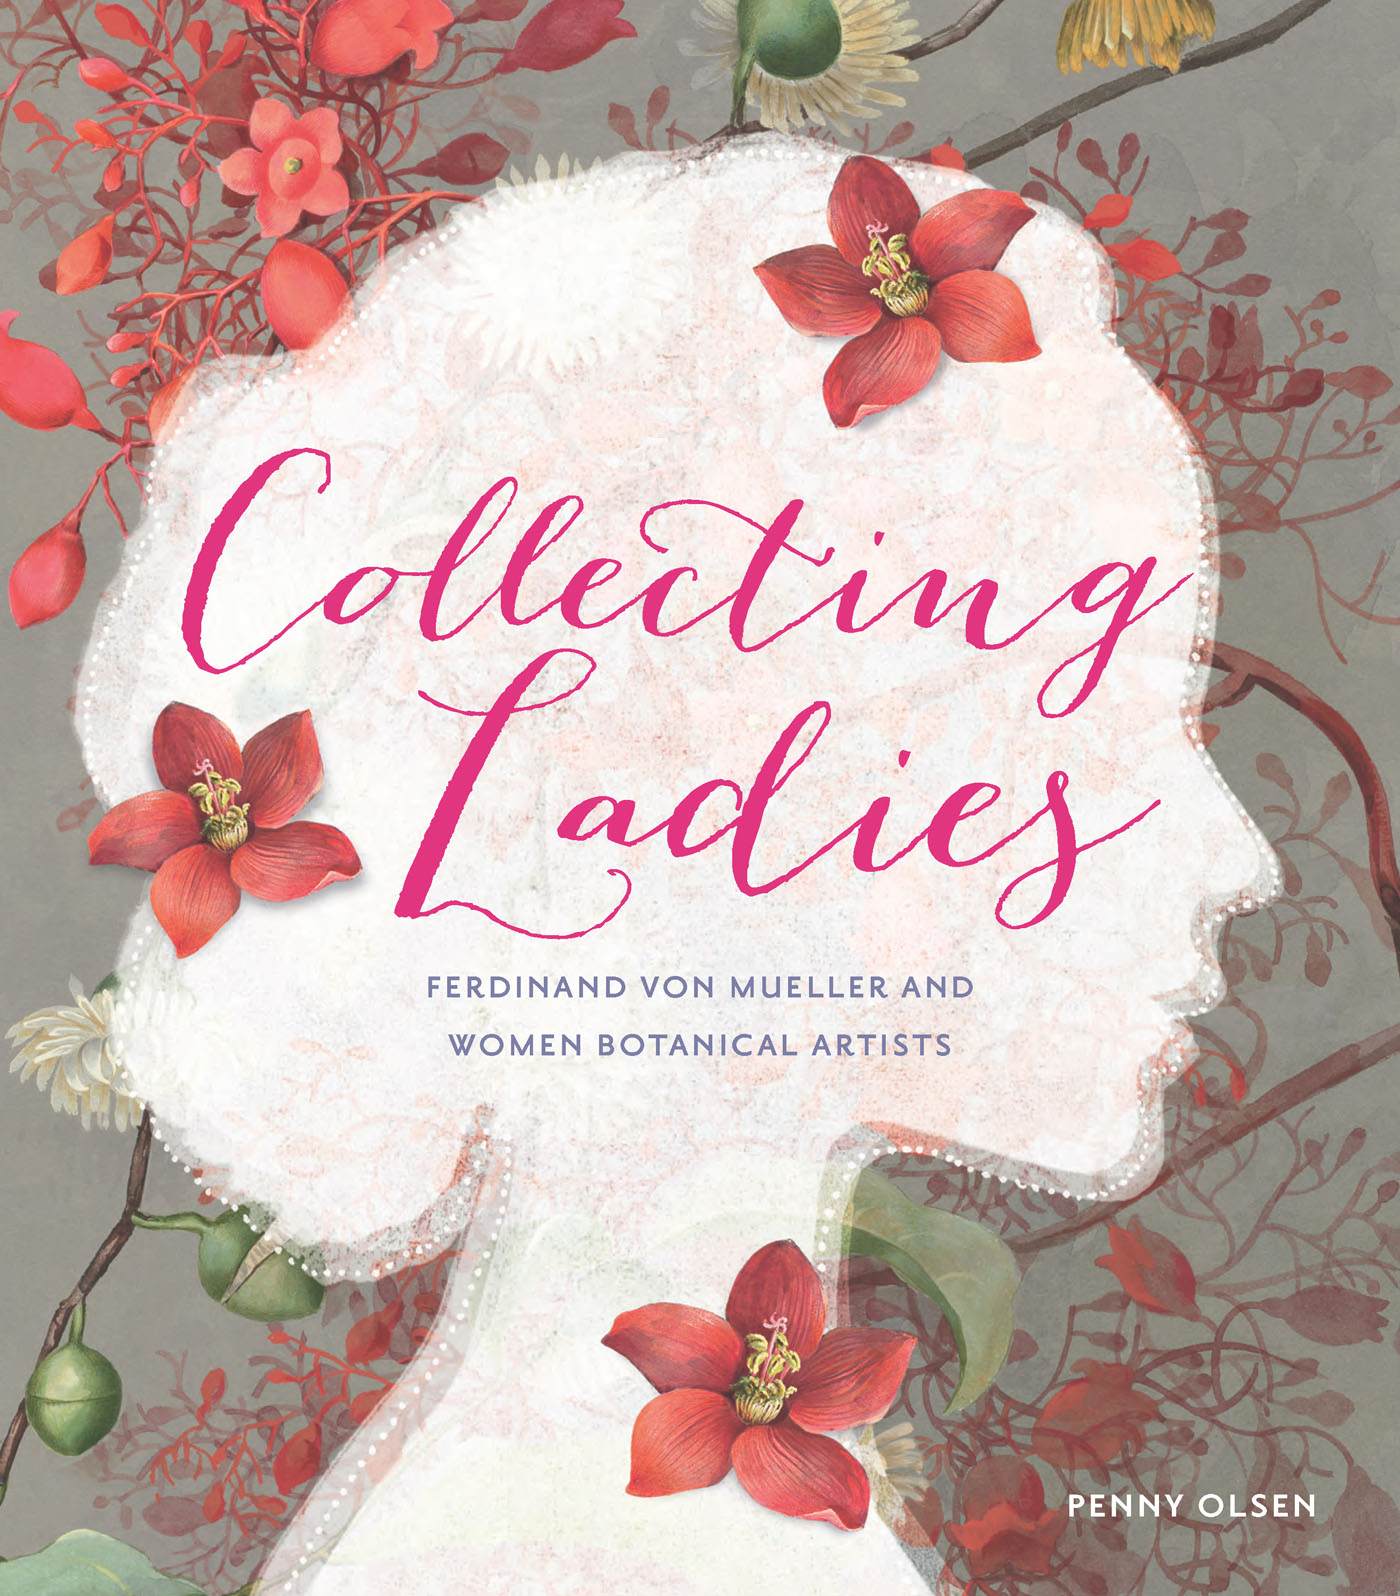 Collecting Ladies Women Botanical Illustrators and Ferdinand von Mueller